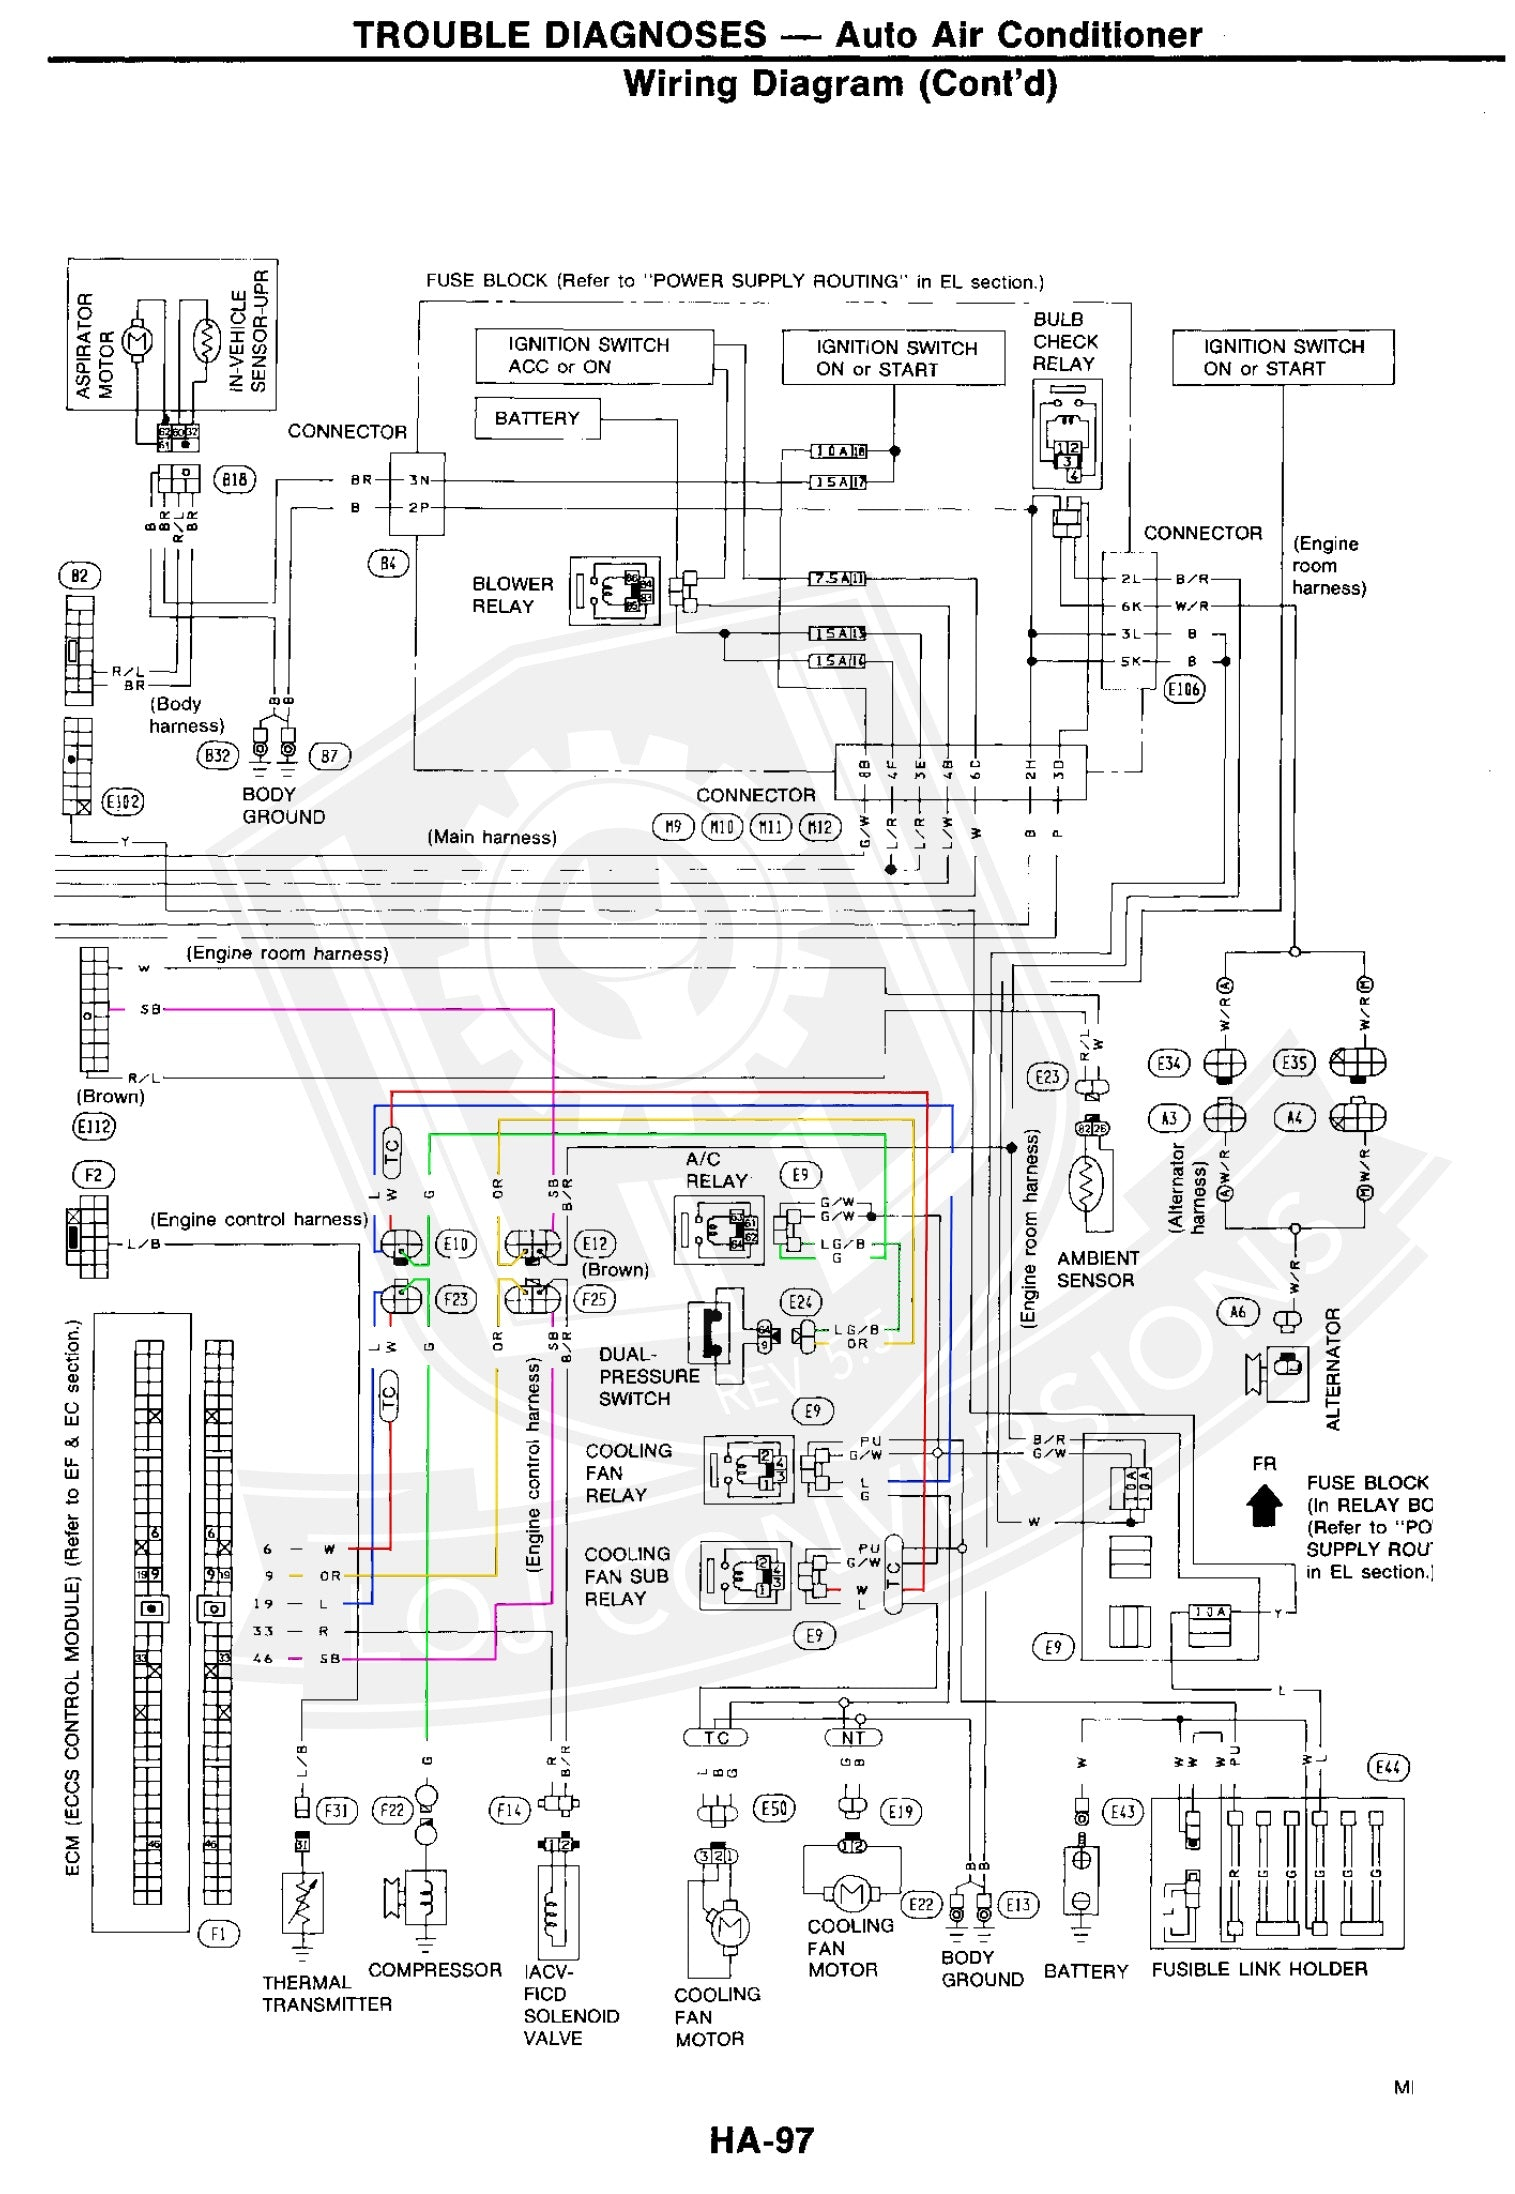 300ZX_AC_Wiring_Engine_Swap_02?9464186101000764173 wiring the ac in a 300zx engine conversion loj conversions 300zx engine wiring harness diagram at alyssarenee.co